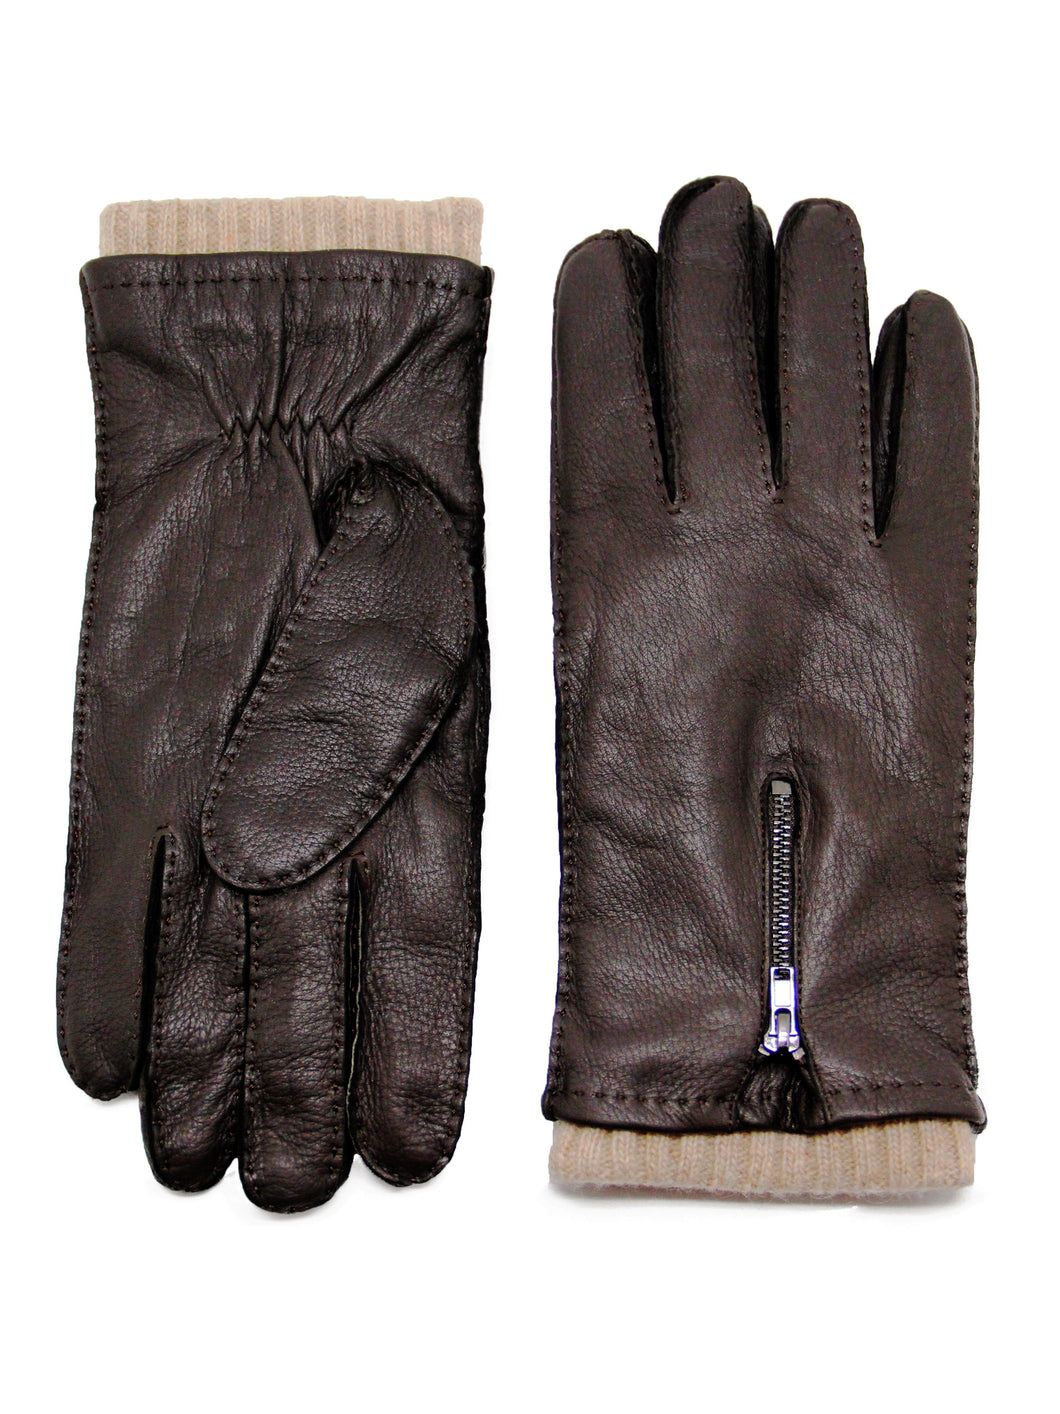 YISEVEN Men's Wool Lined Deerskin Leather Gloves Handsewn